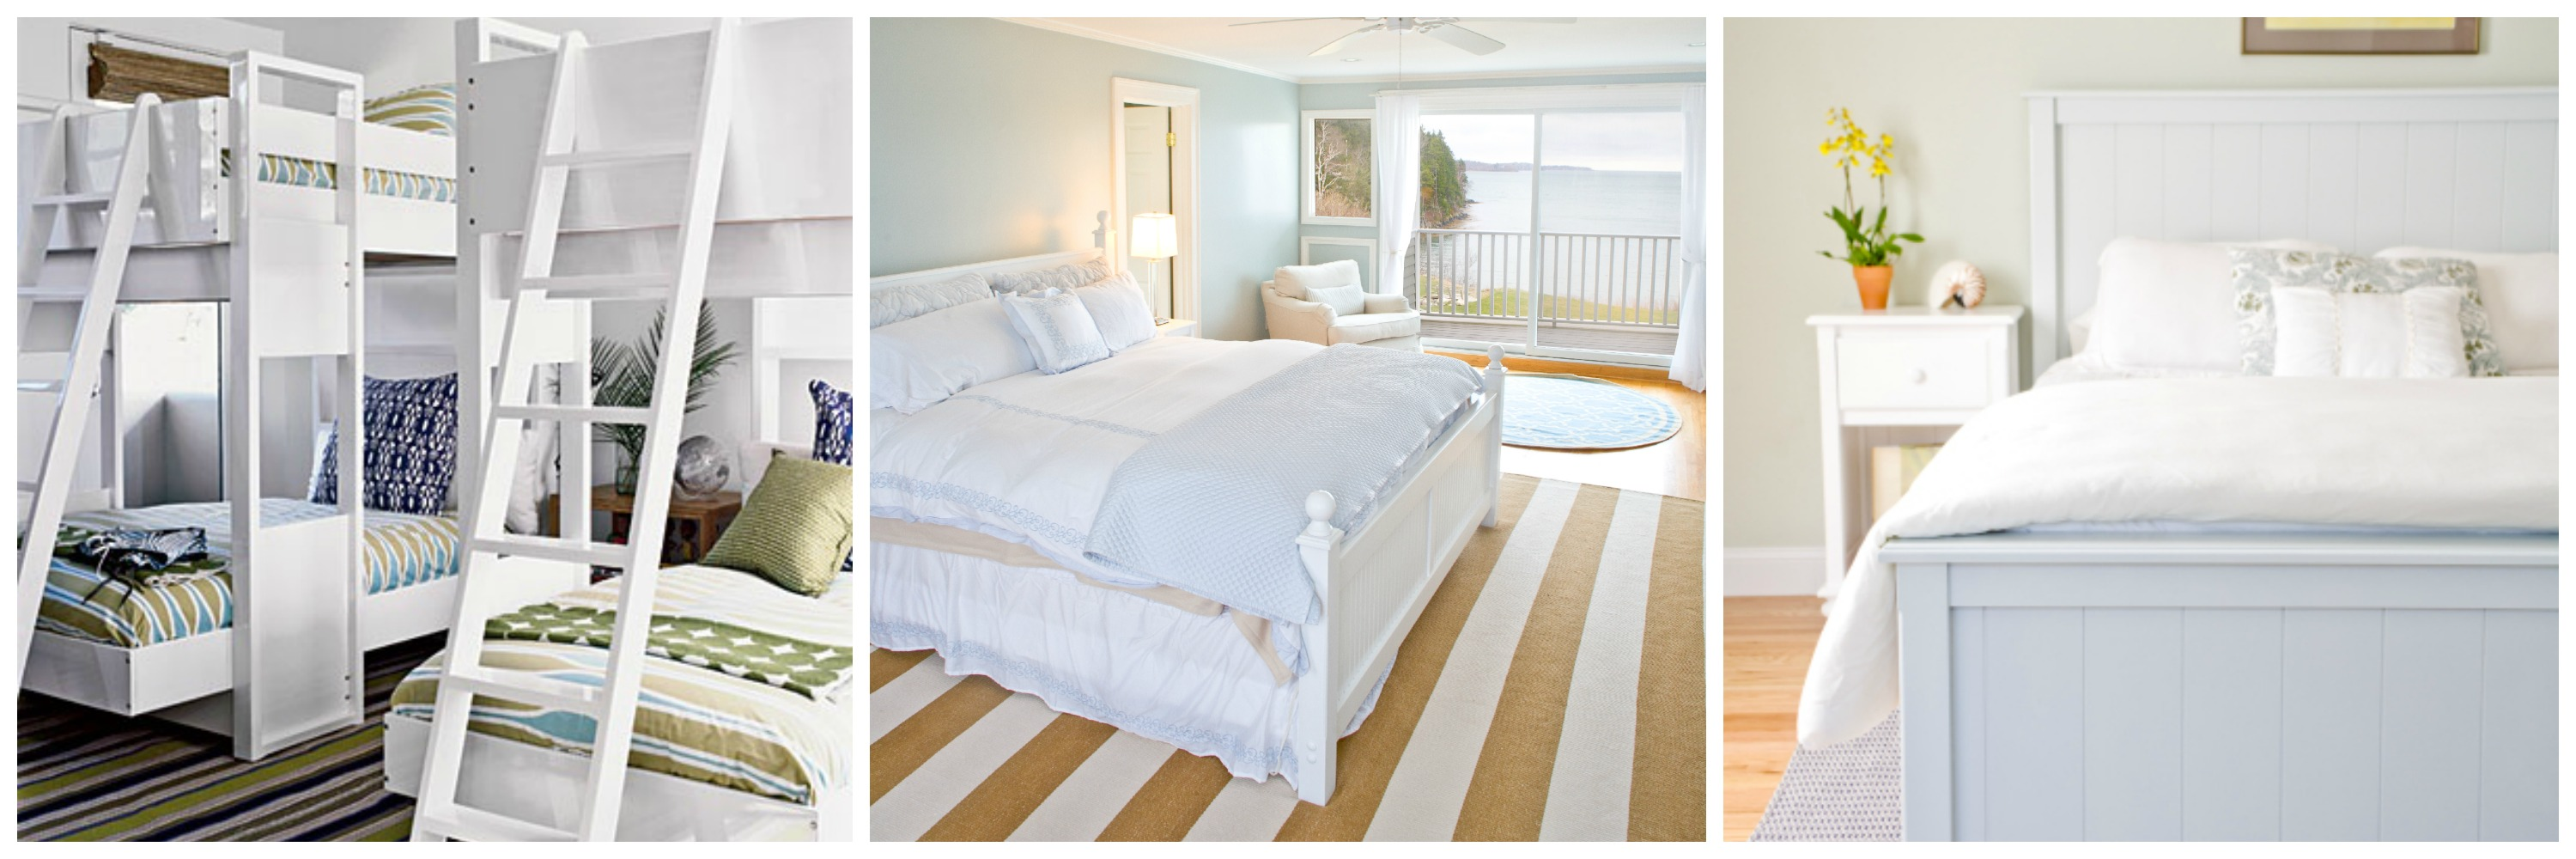 Bedrooms Dressed In White Look So Crisp And Clean I Love This Coastal Living Bunk Room And These Two Coastal Celia Bedilia Bedrooms Are Among My Favorites